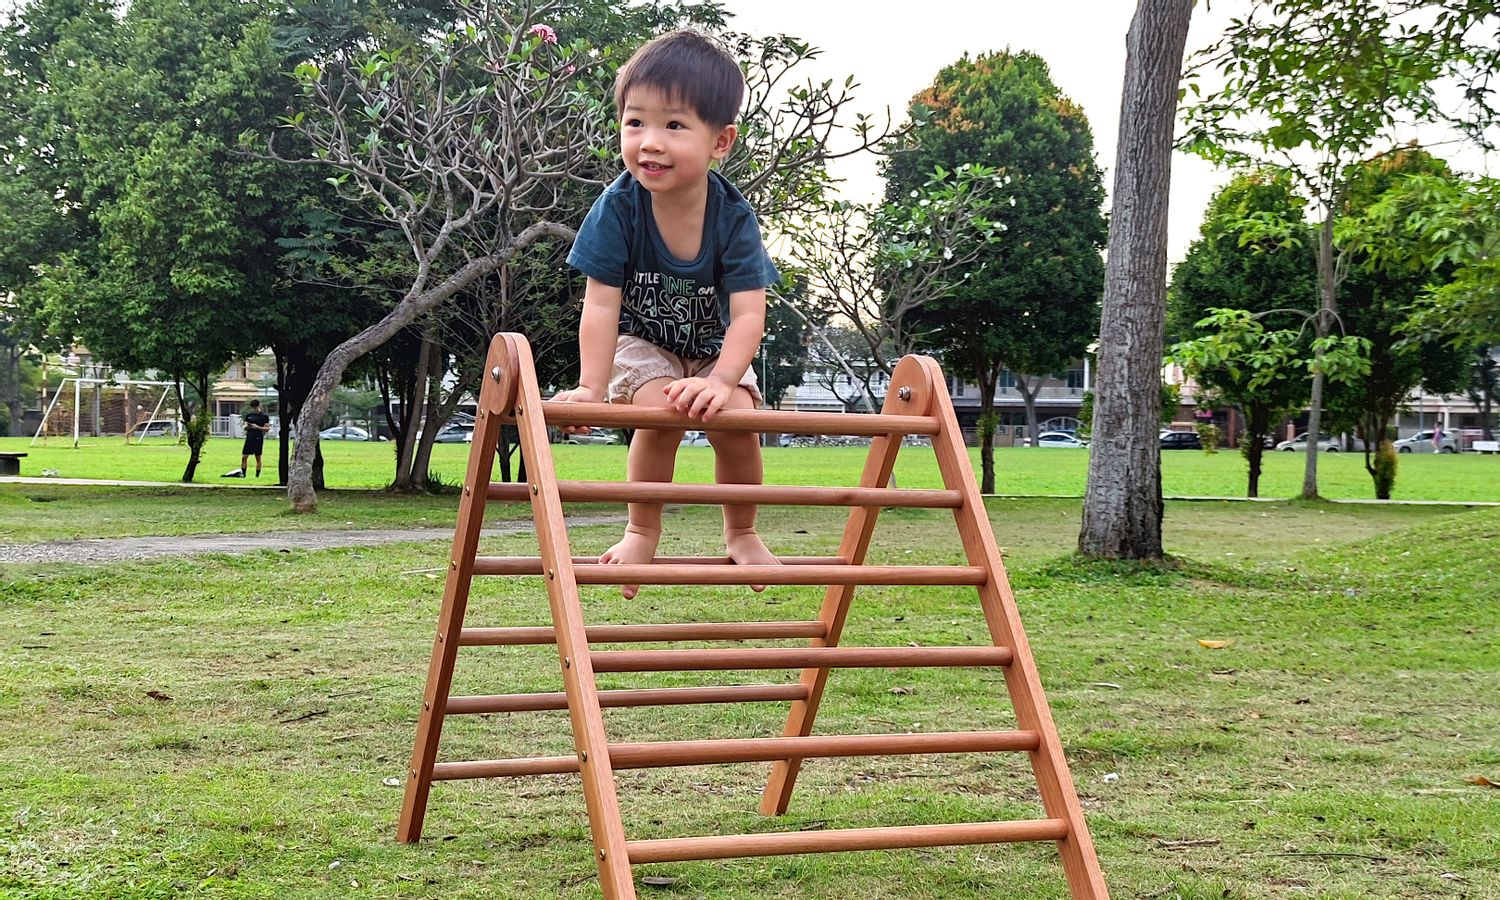 Modle Play | Open-Ended Play for young ones